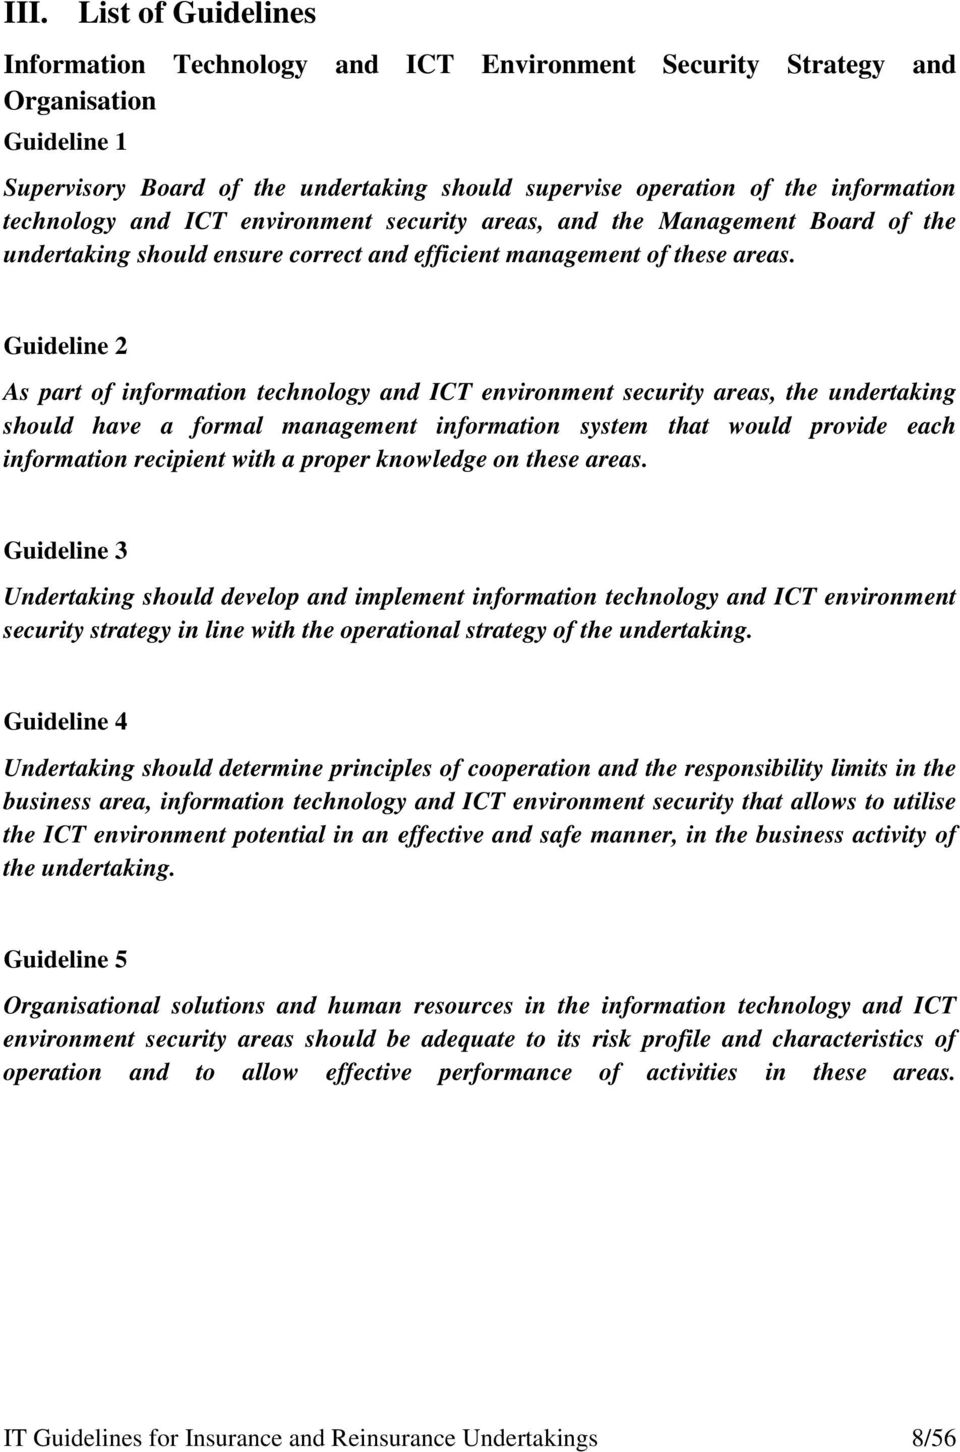 Guideline 2 As part of information technology and ICT environment security areas, the undertaking should have a formal management information system that would provide each information recipient with